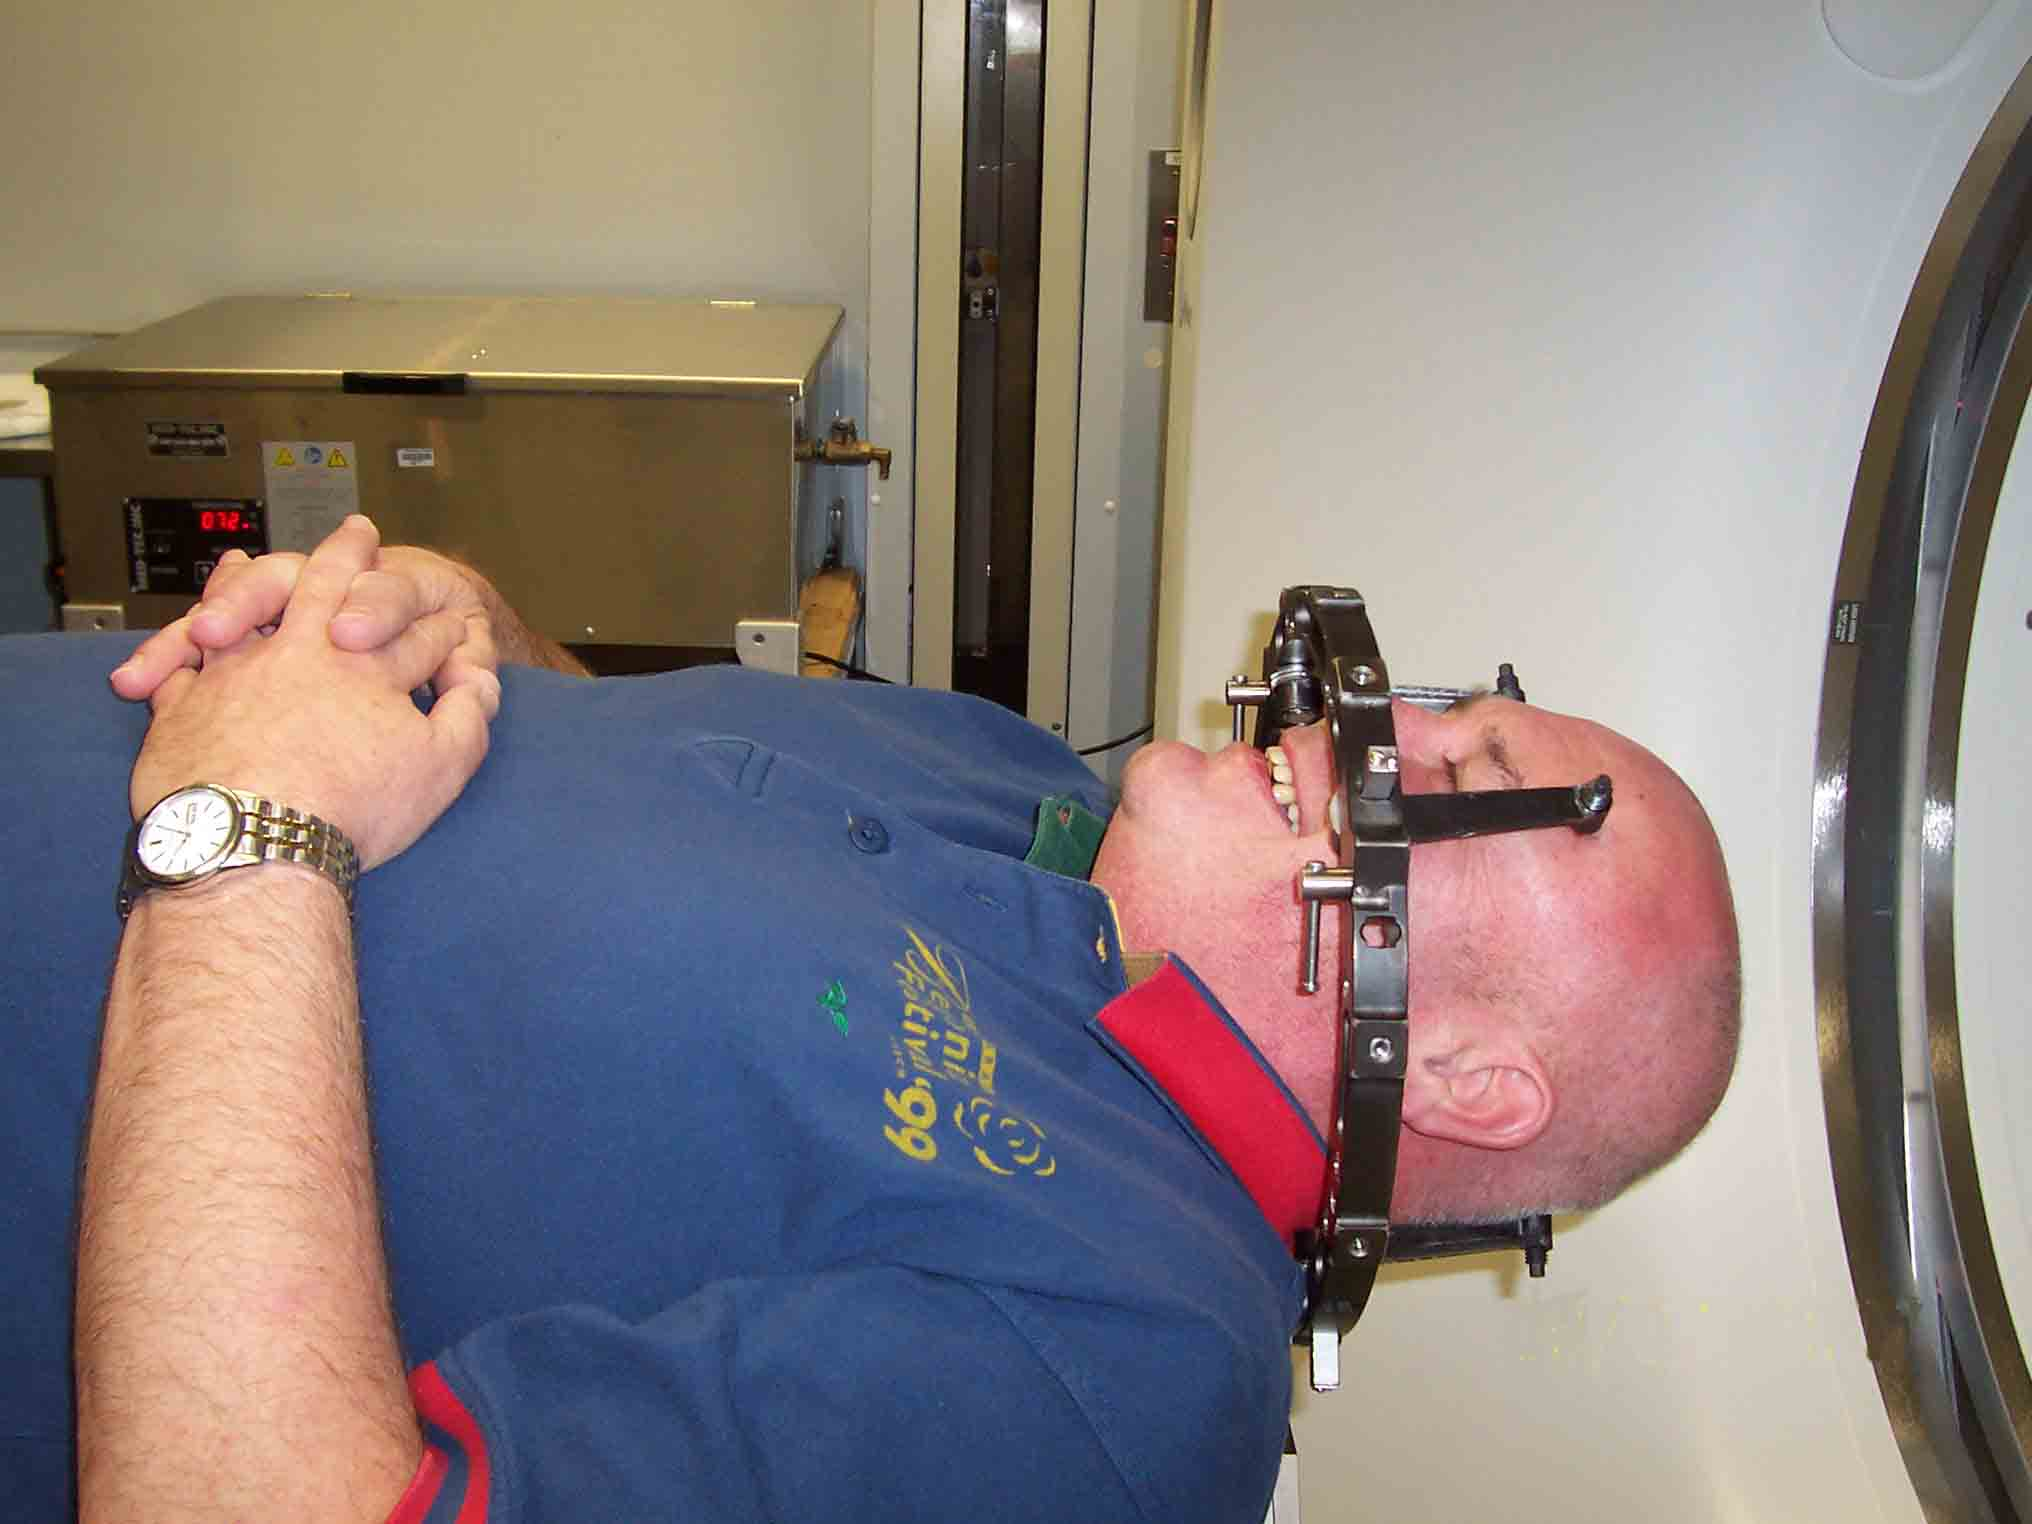 Radio Therapy Head Frame used for Acoustic Neuroma